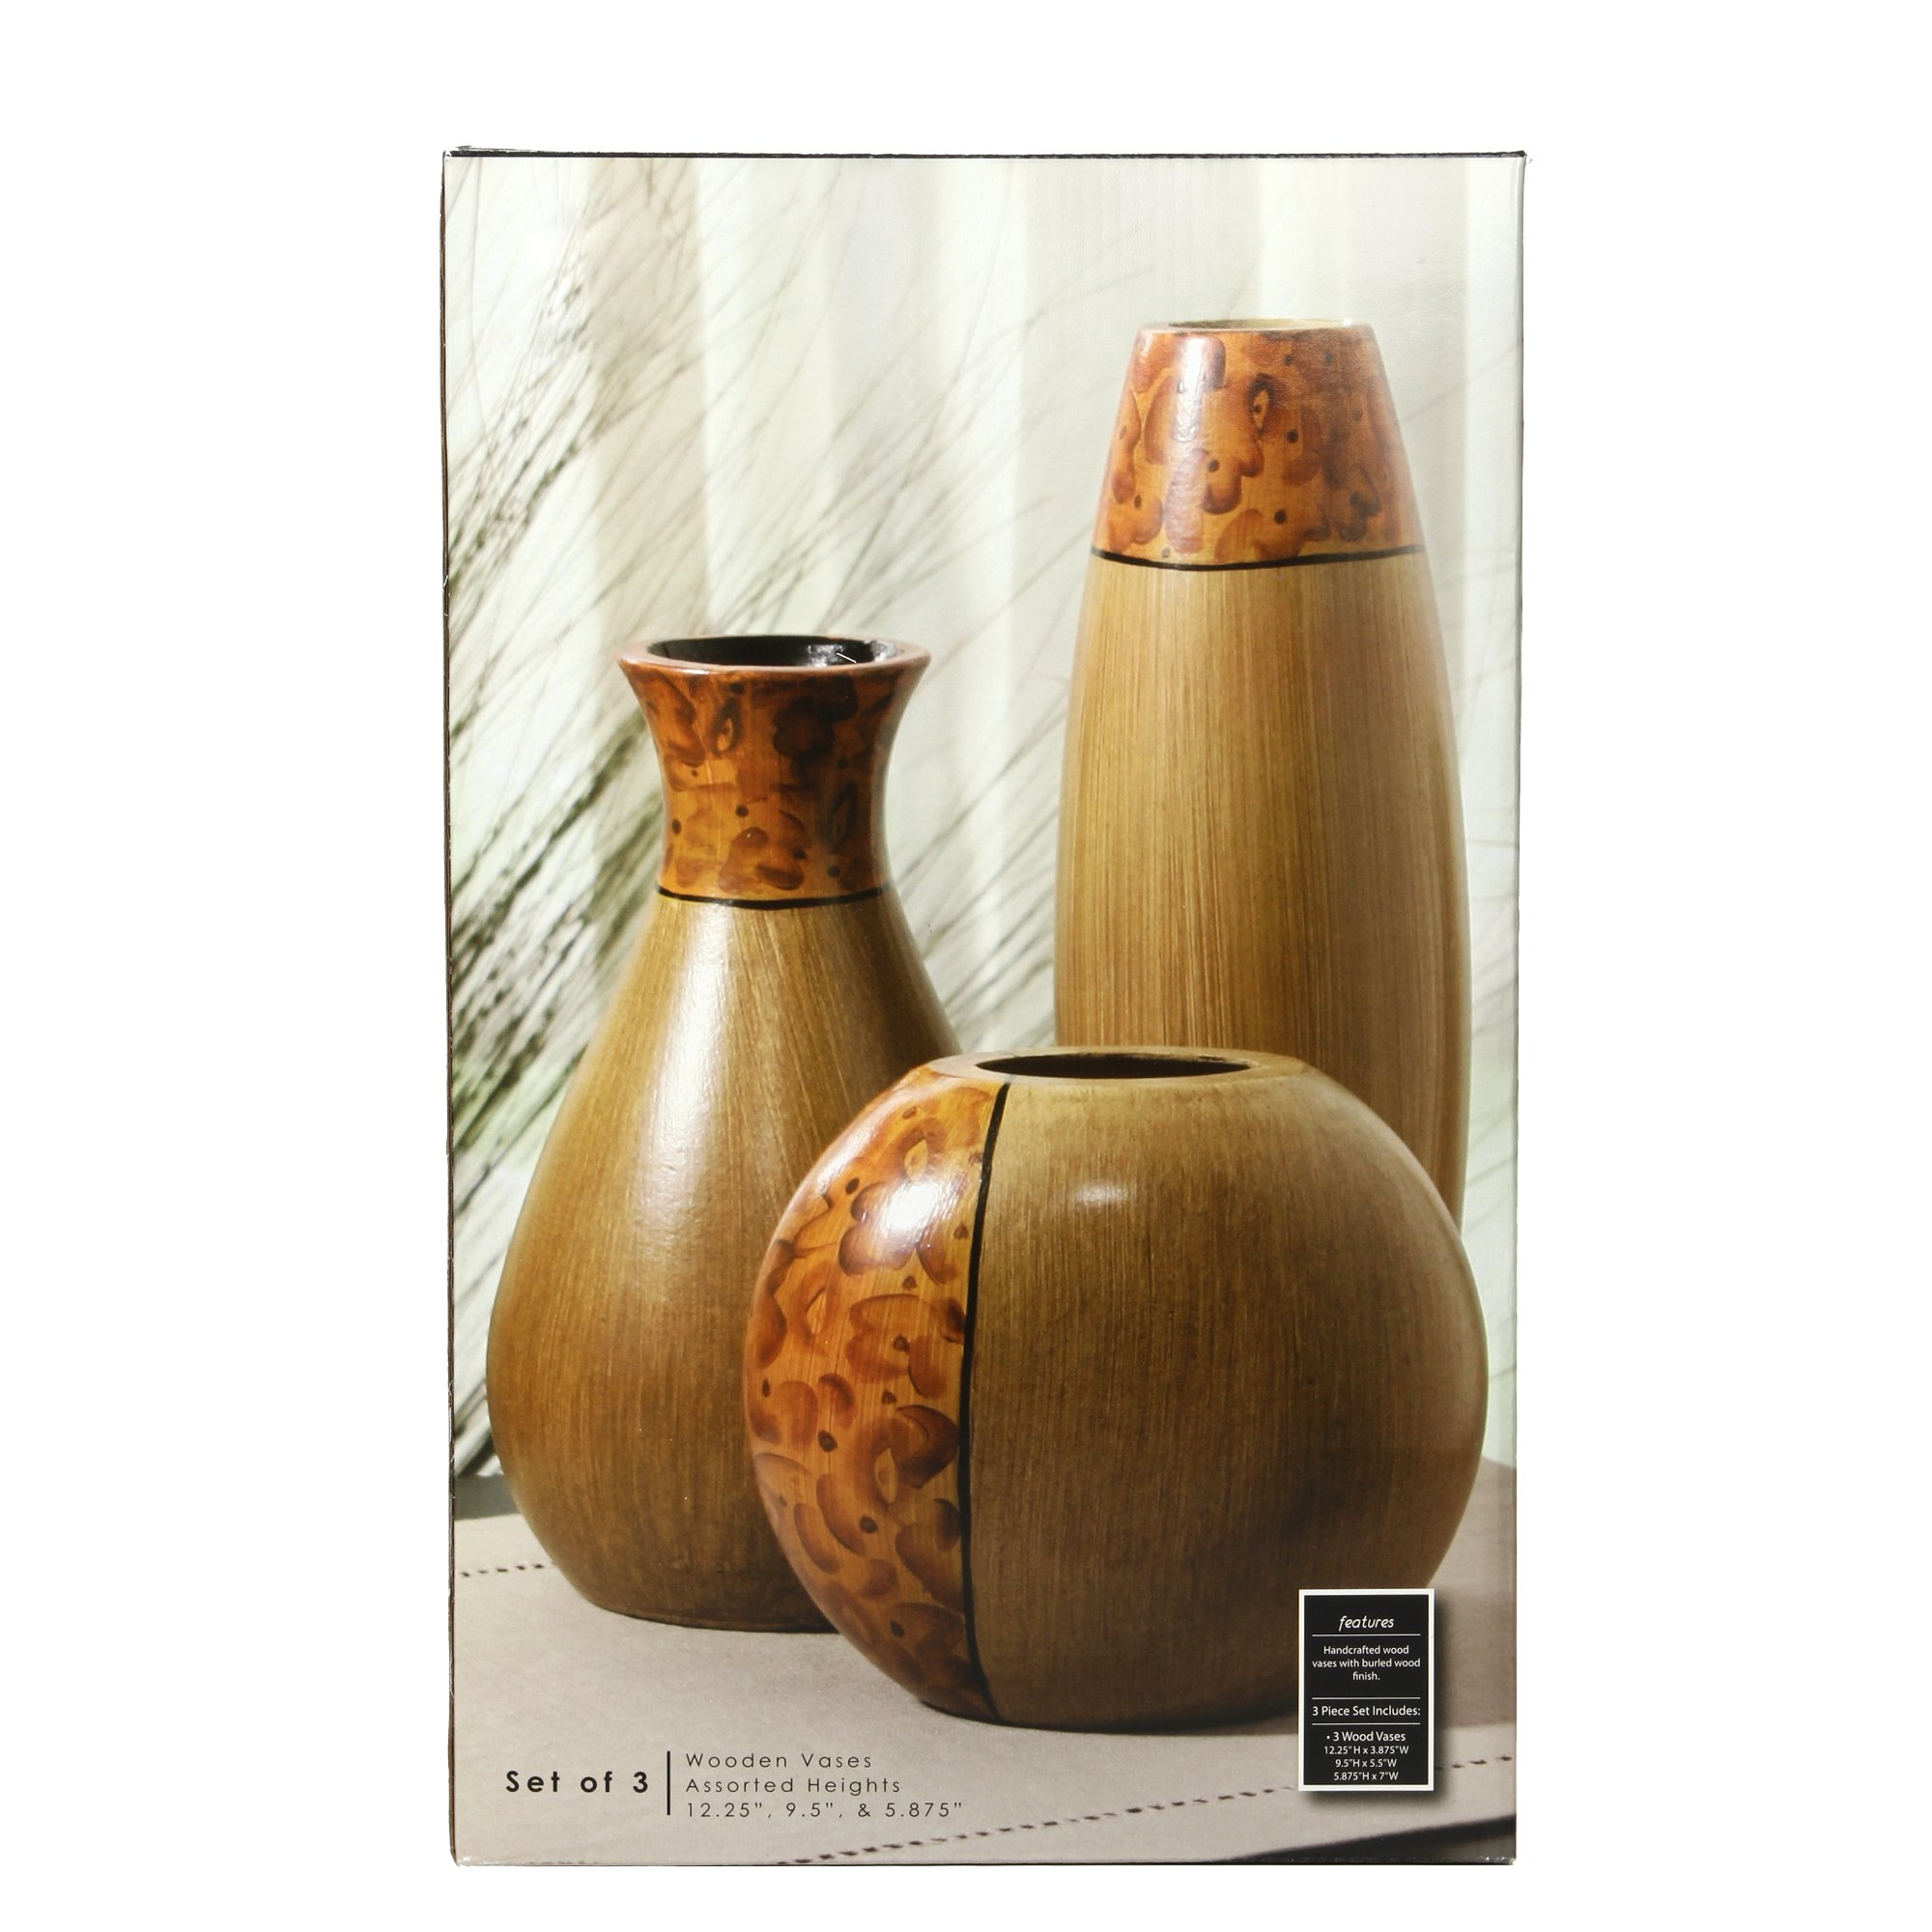 Hosley's Set of 3 Burlwood Vases. Ideal Gift for Wedding or Special Occasion and for Home Office, Decor, Floor Vases, Spa, Aromatherapy Settings O3 by Hosley (Image #2)